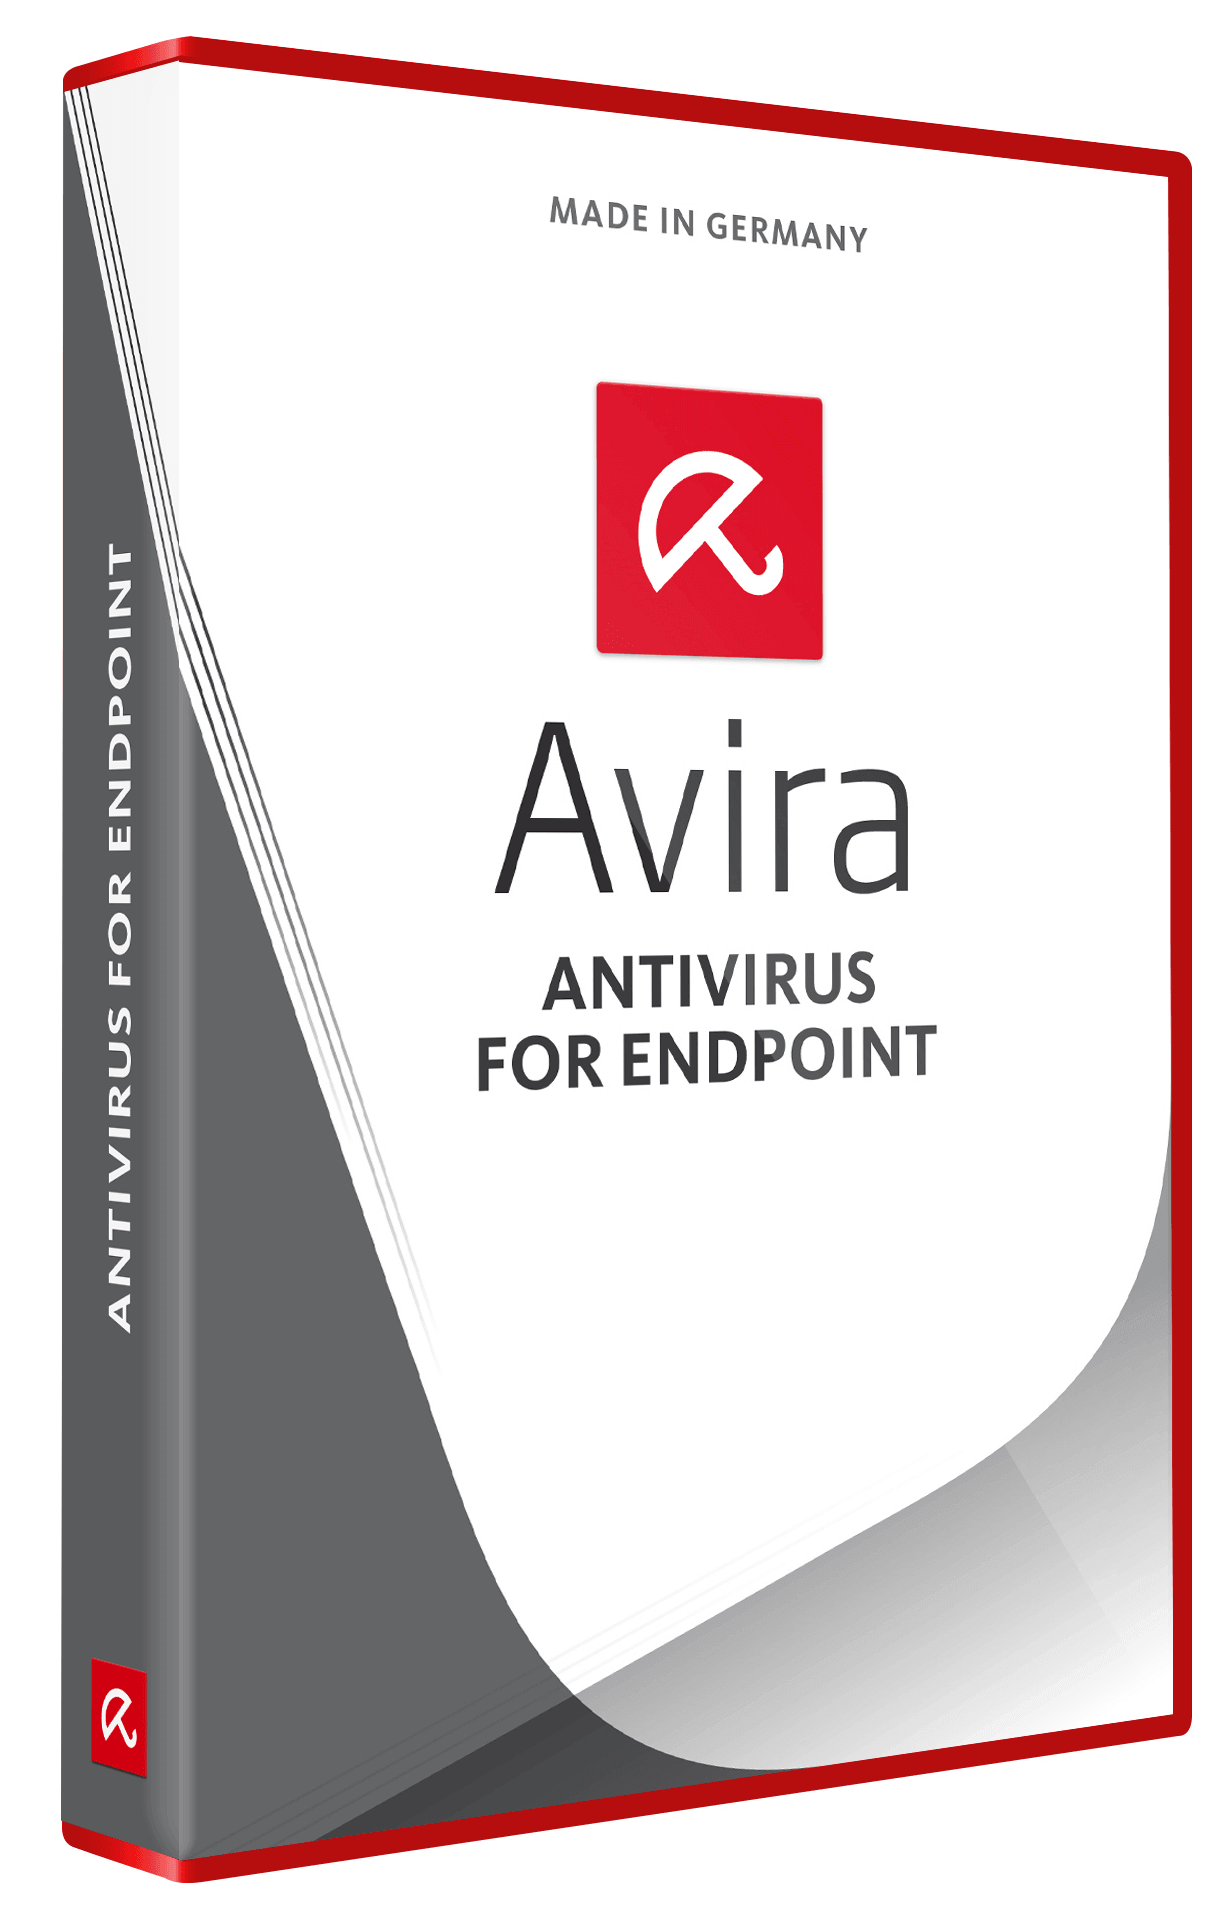 Avira Antivirus for Endpoint Discount Coupon